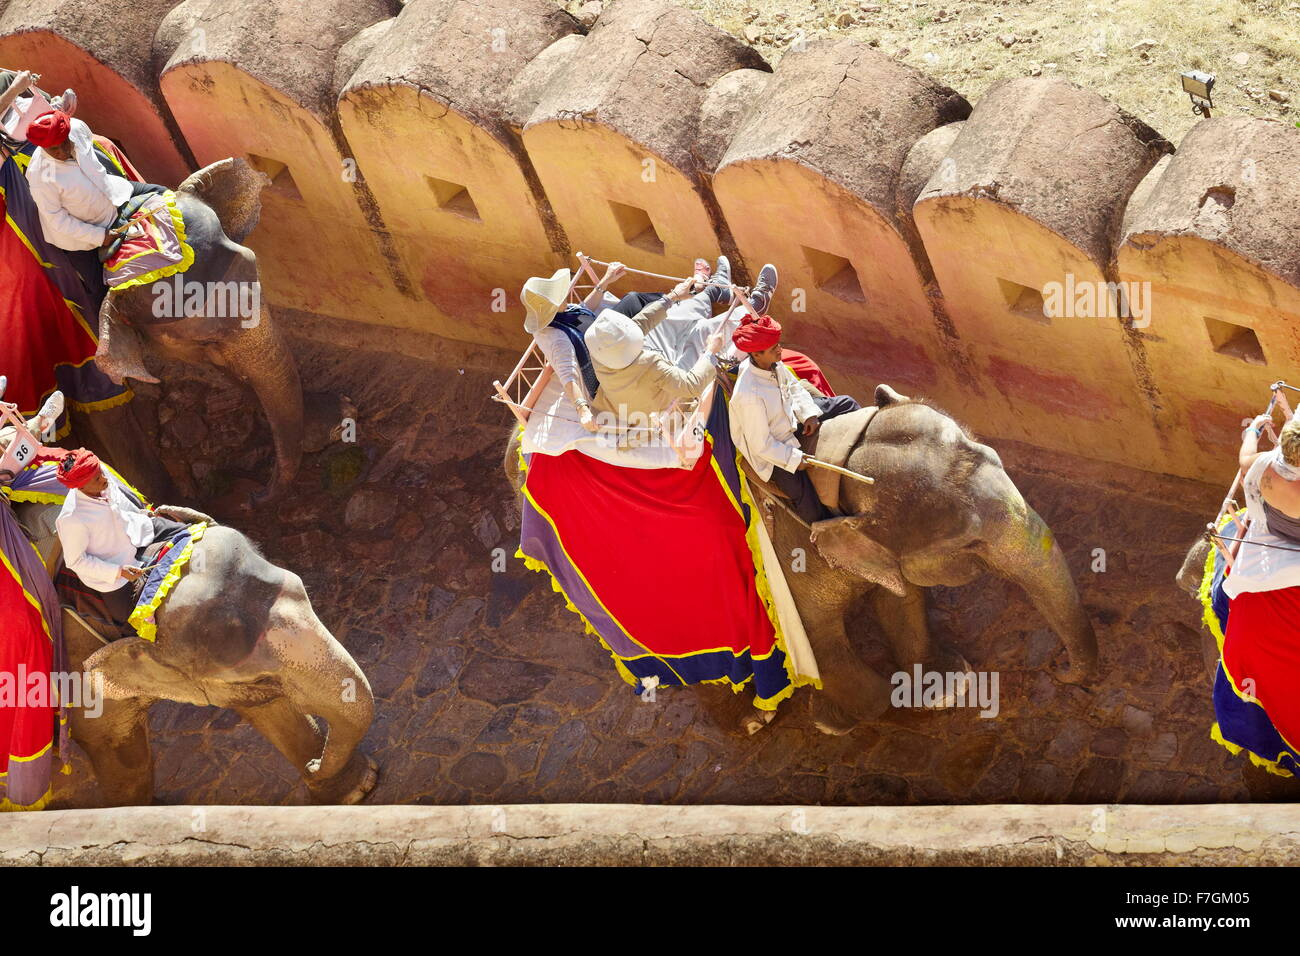 Indian Elephant carrying tourists to the Amber Fort, Amer 11km near of Jaipur, Rajasthan, India - Stock Image